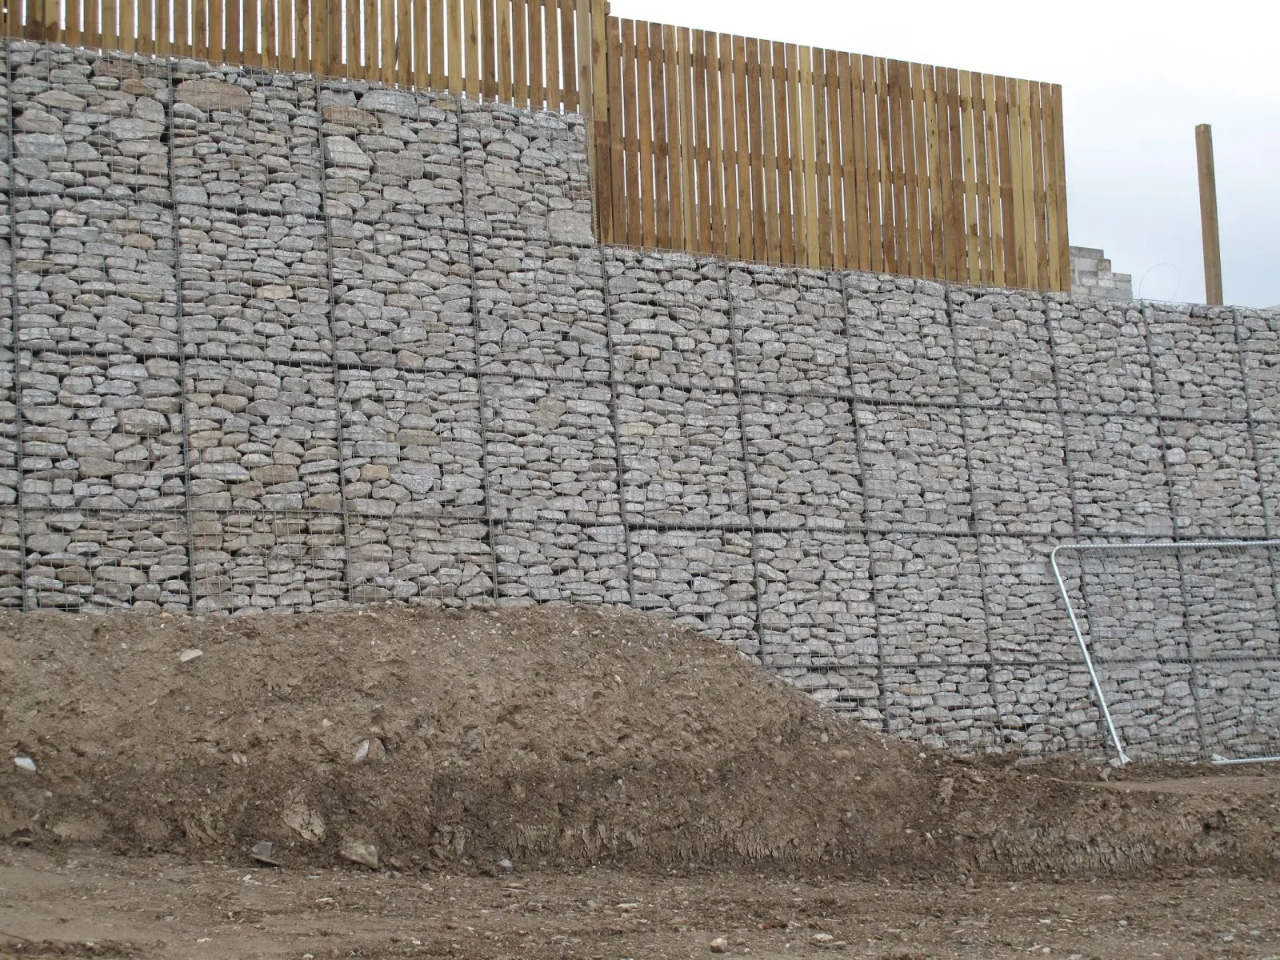 Stone wall with wooden fence